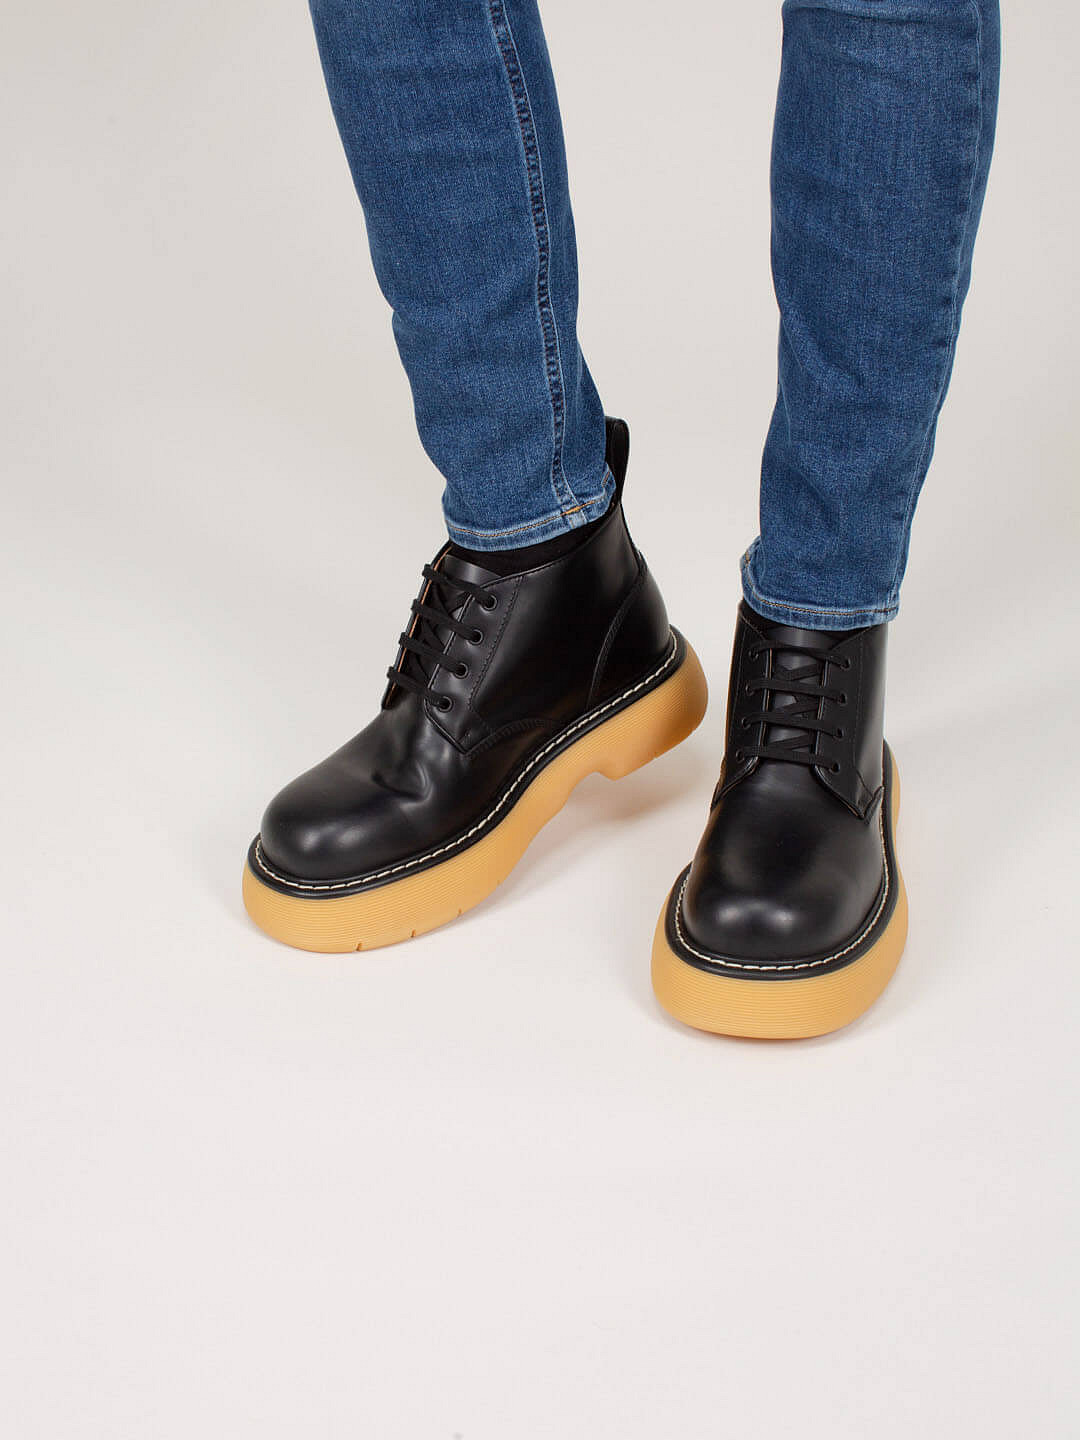 Boot Leather Tokyo black Rubber Sole